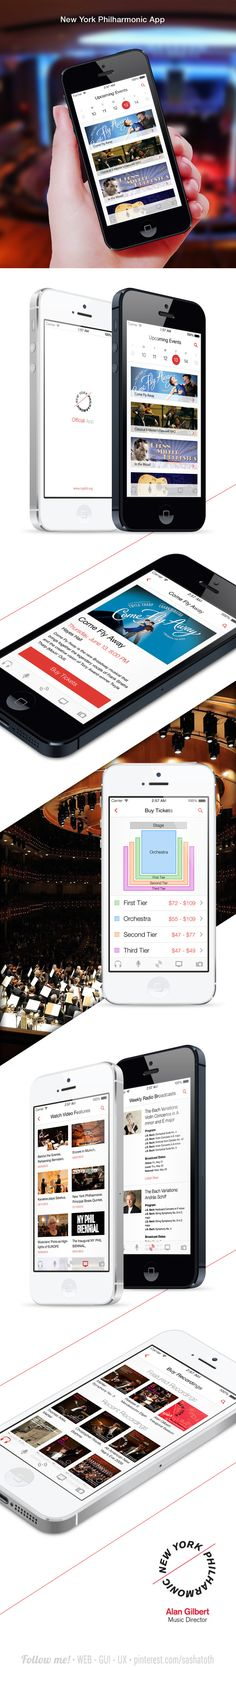 iOS application for New York Philharmonic by prosto , via Behance